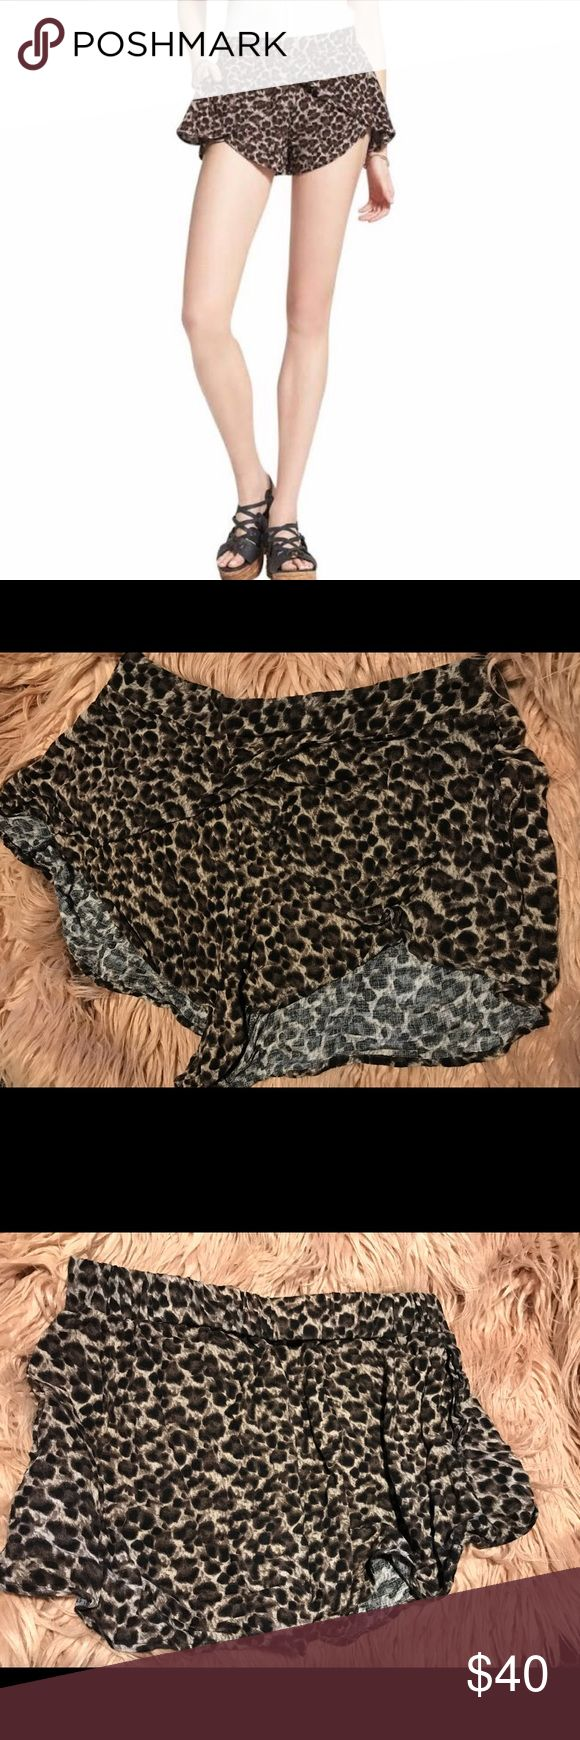 Free people cheetah print shorts Selling Free People cheetah print loose short shorts! These shorts are so comfy I could wear them to bed! They're super cute with boots, sandals and even sneakers. These shorts are are adorable for everyday or even a music festival! Free People Shorts